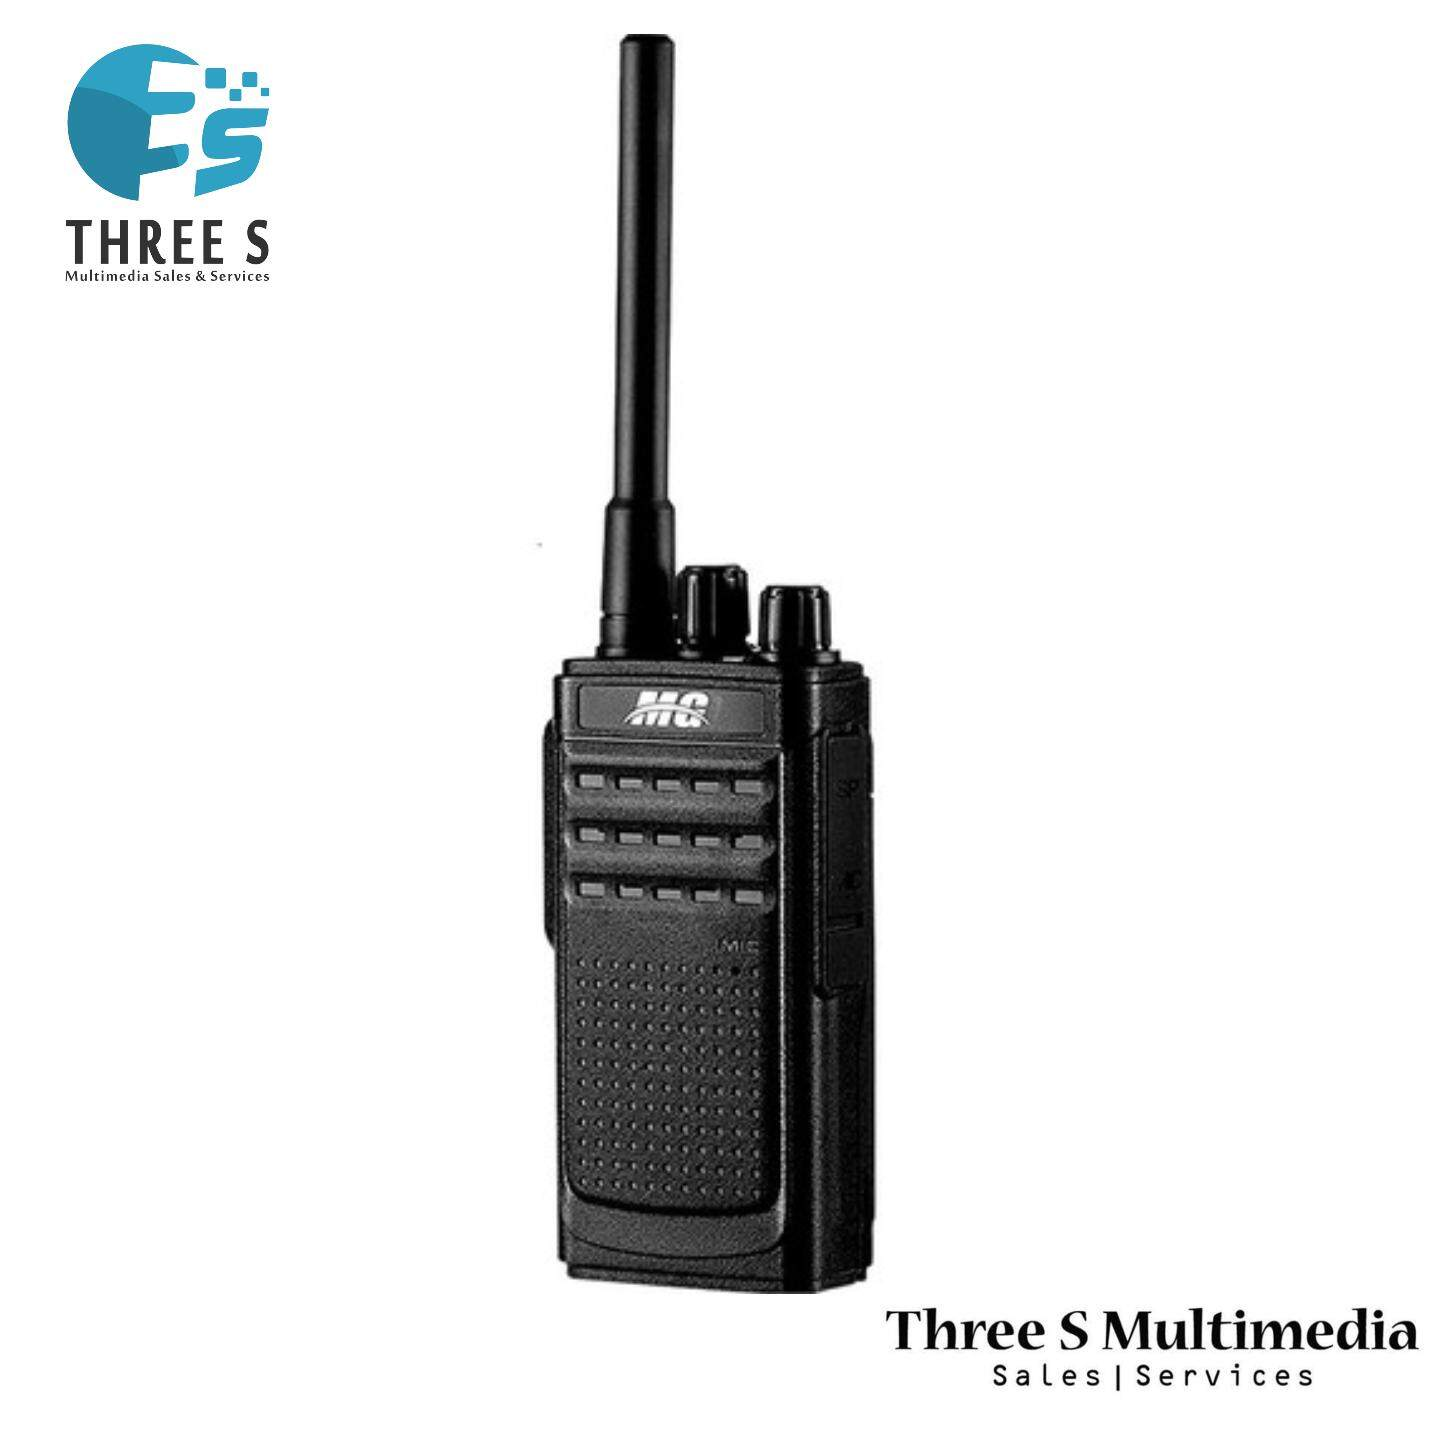 Jiantong MG568 analog walkie-talkie